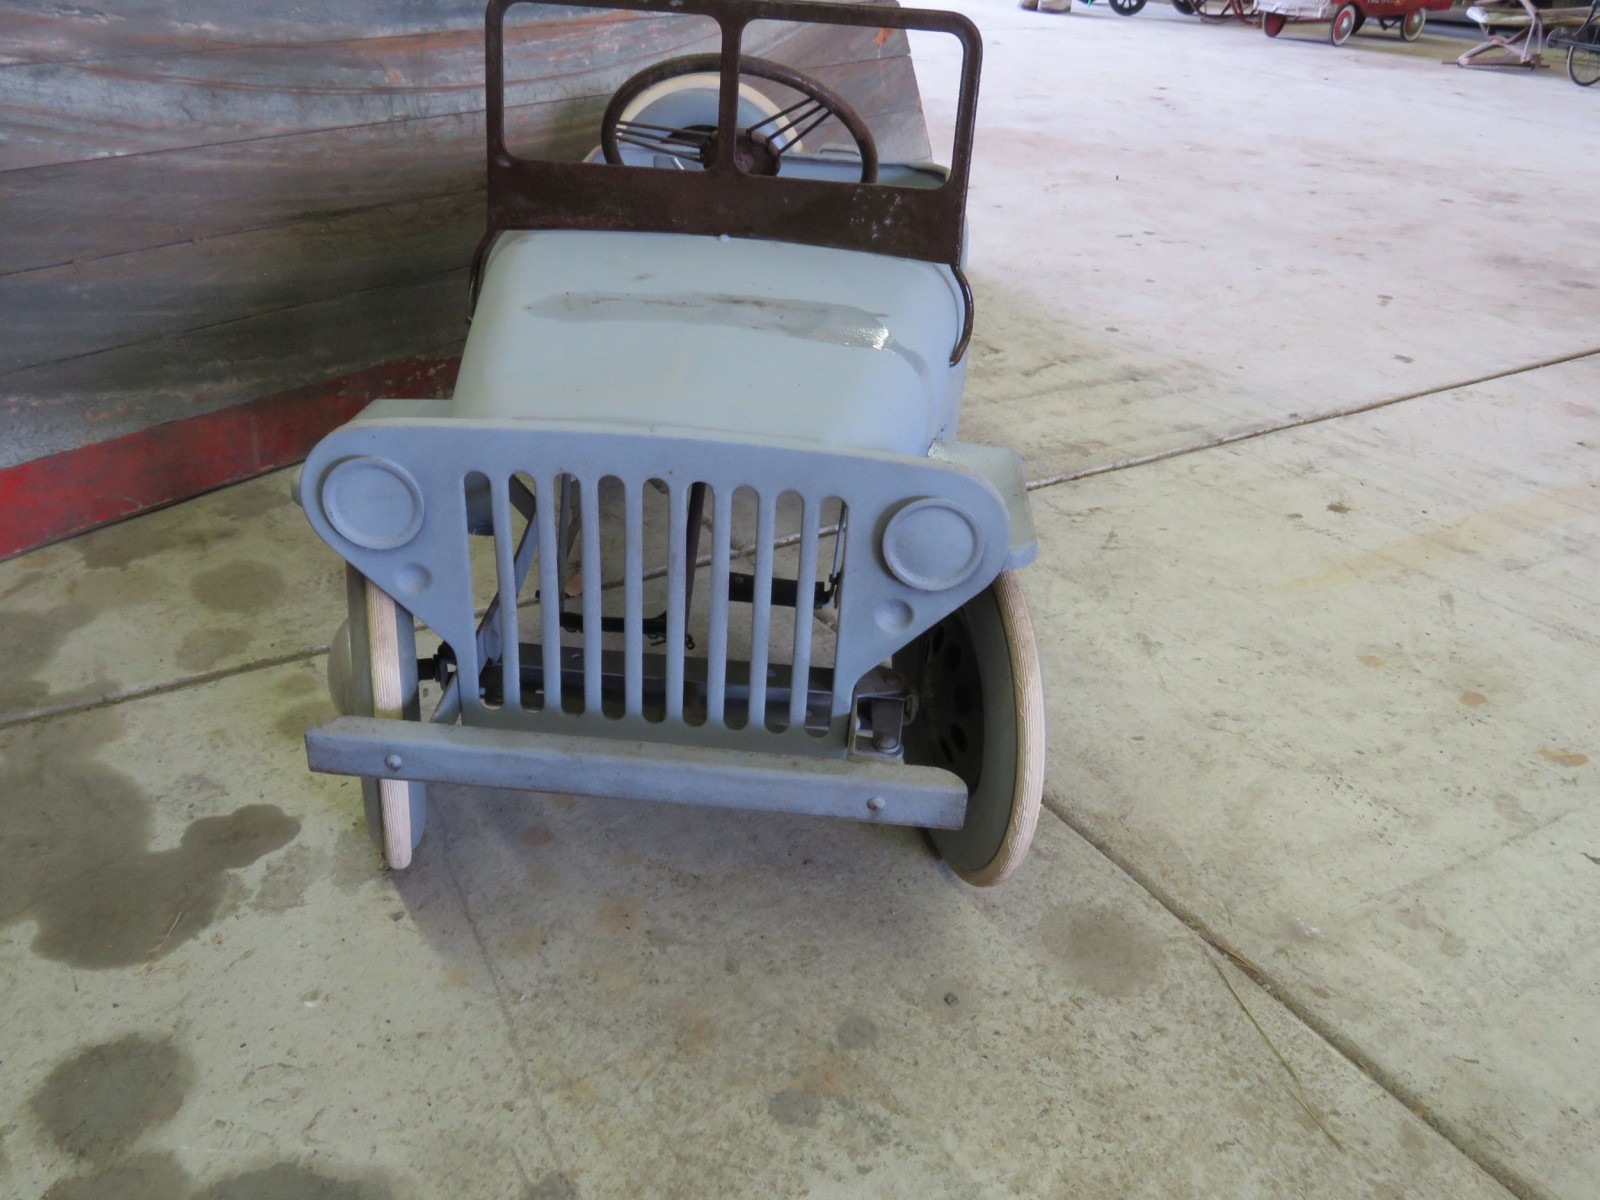 Vintage Garton Military Willys Jeep Pedal Car - Image 2